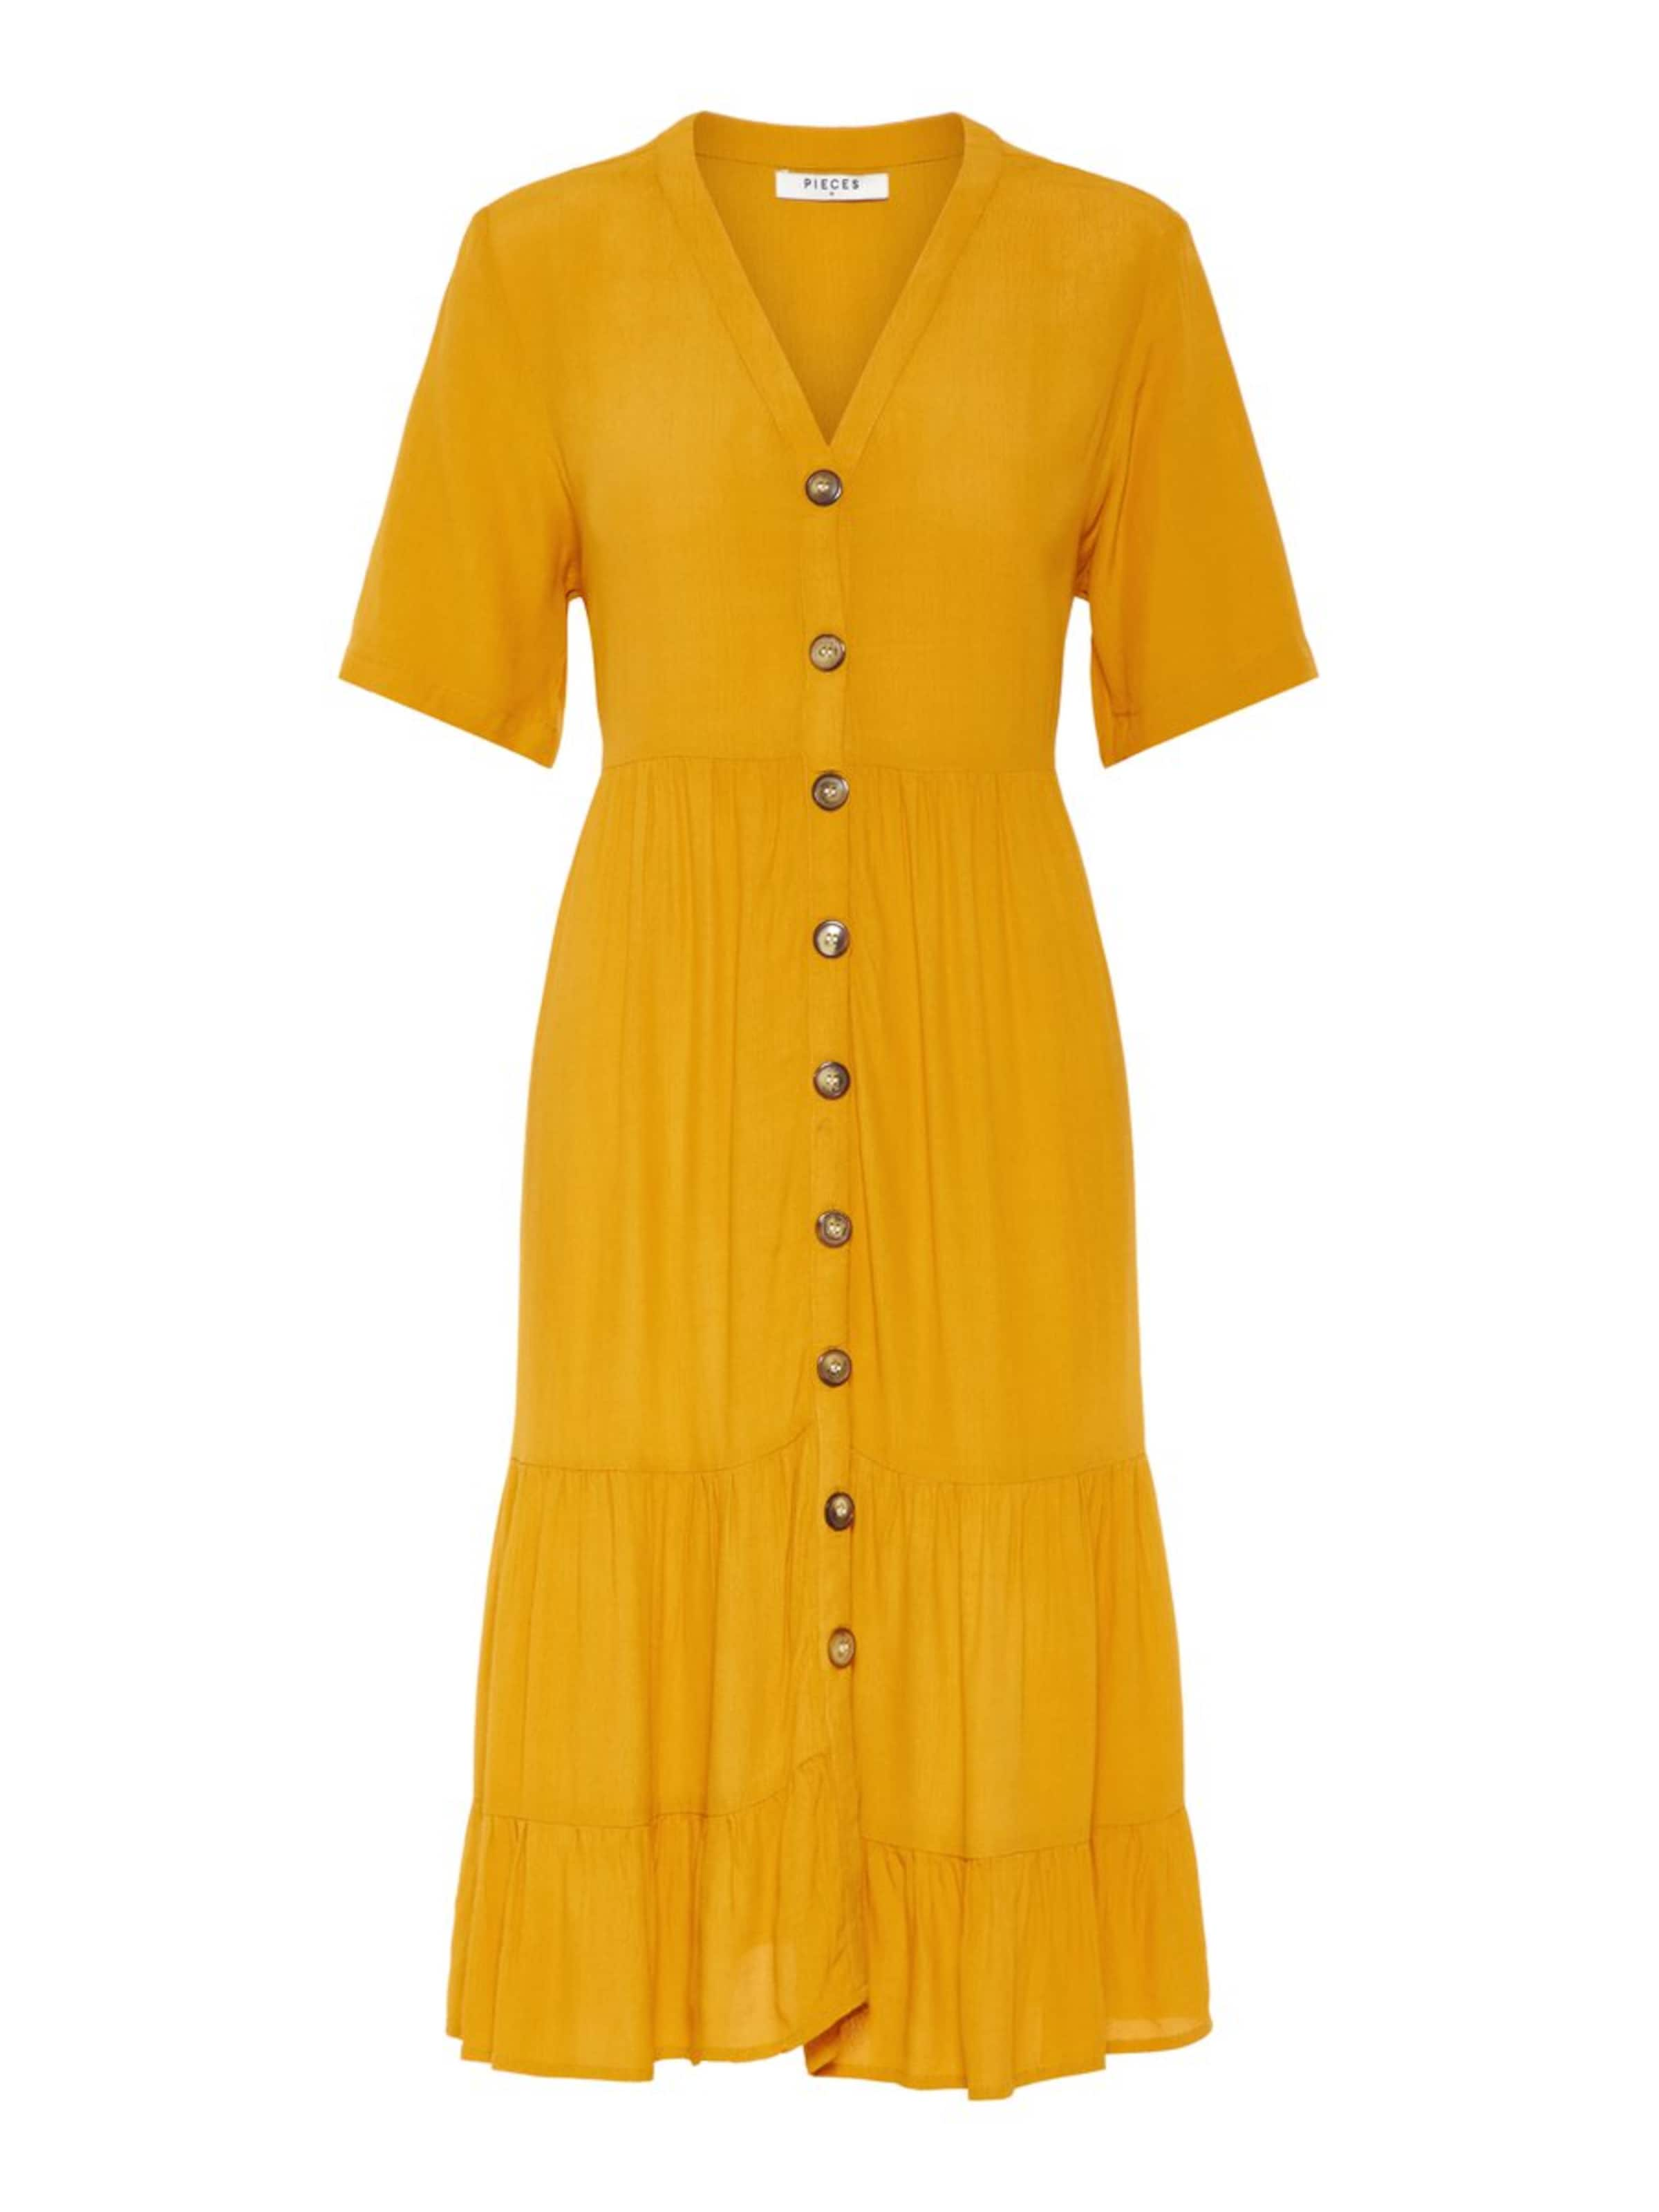 D'or Pieces Robe En chemise Jaune vYb6Iy7fgm